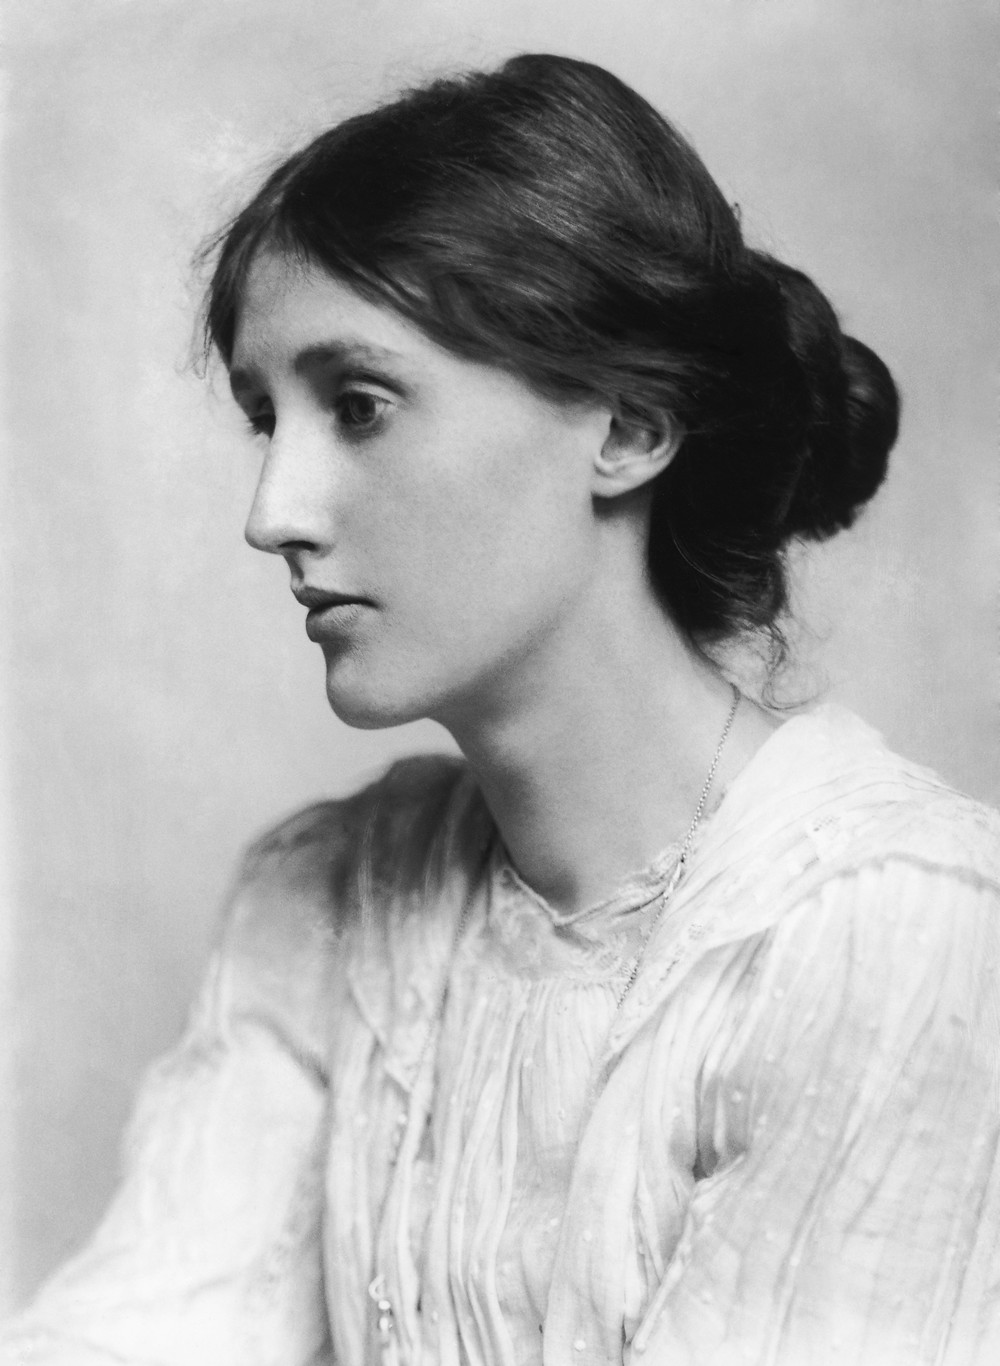 English novelist and critic Virginia Woolf (1882 – 1941), 1902. (Photo by George C. Beresford/Hulton Archive/Getty Images)